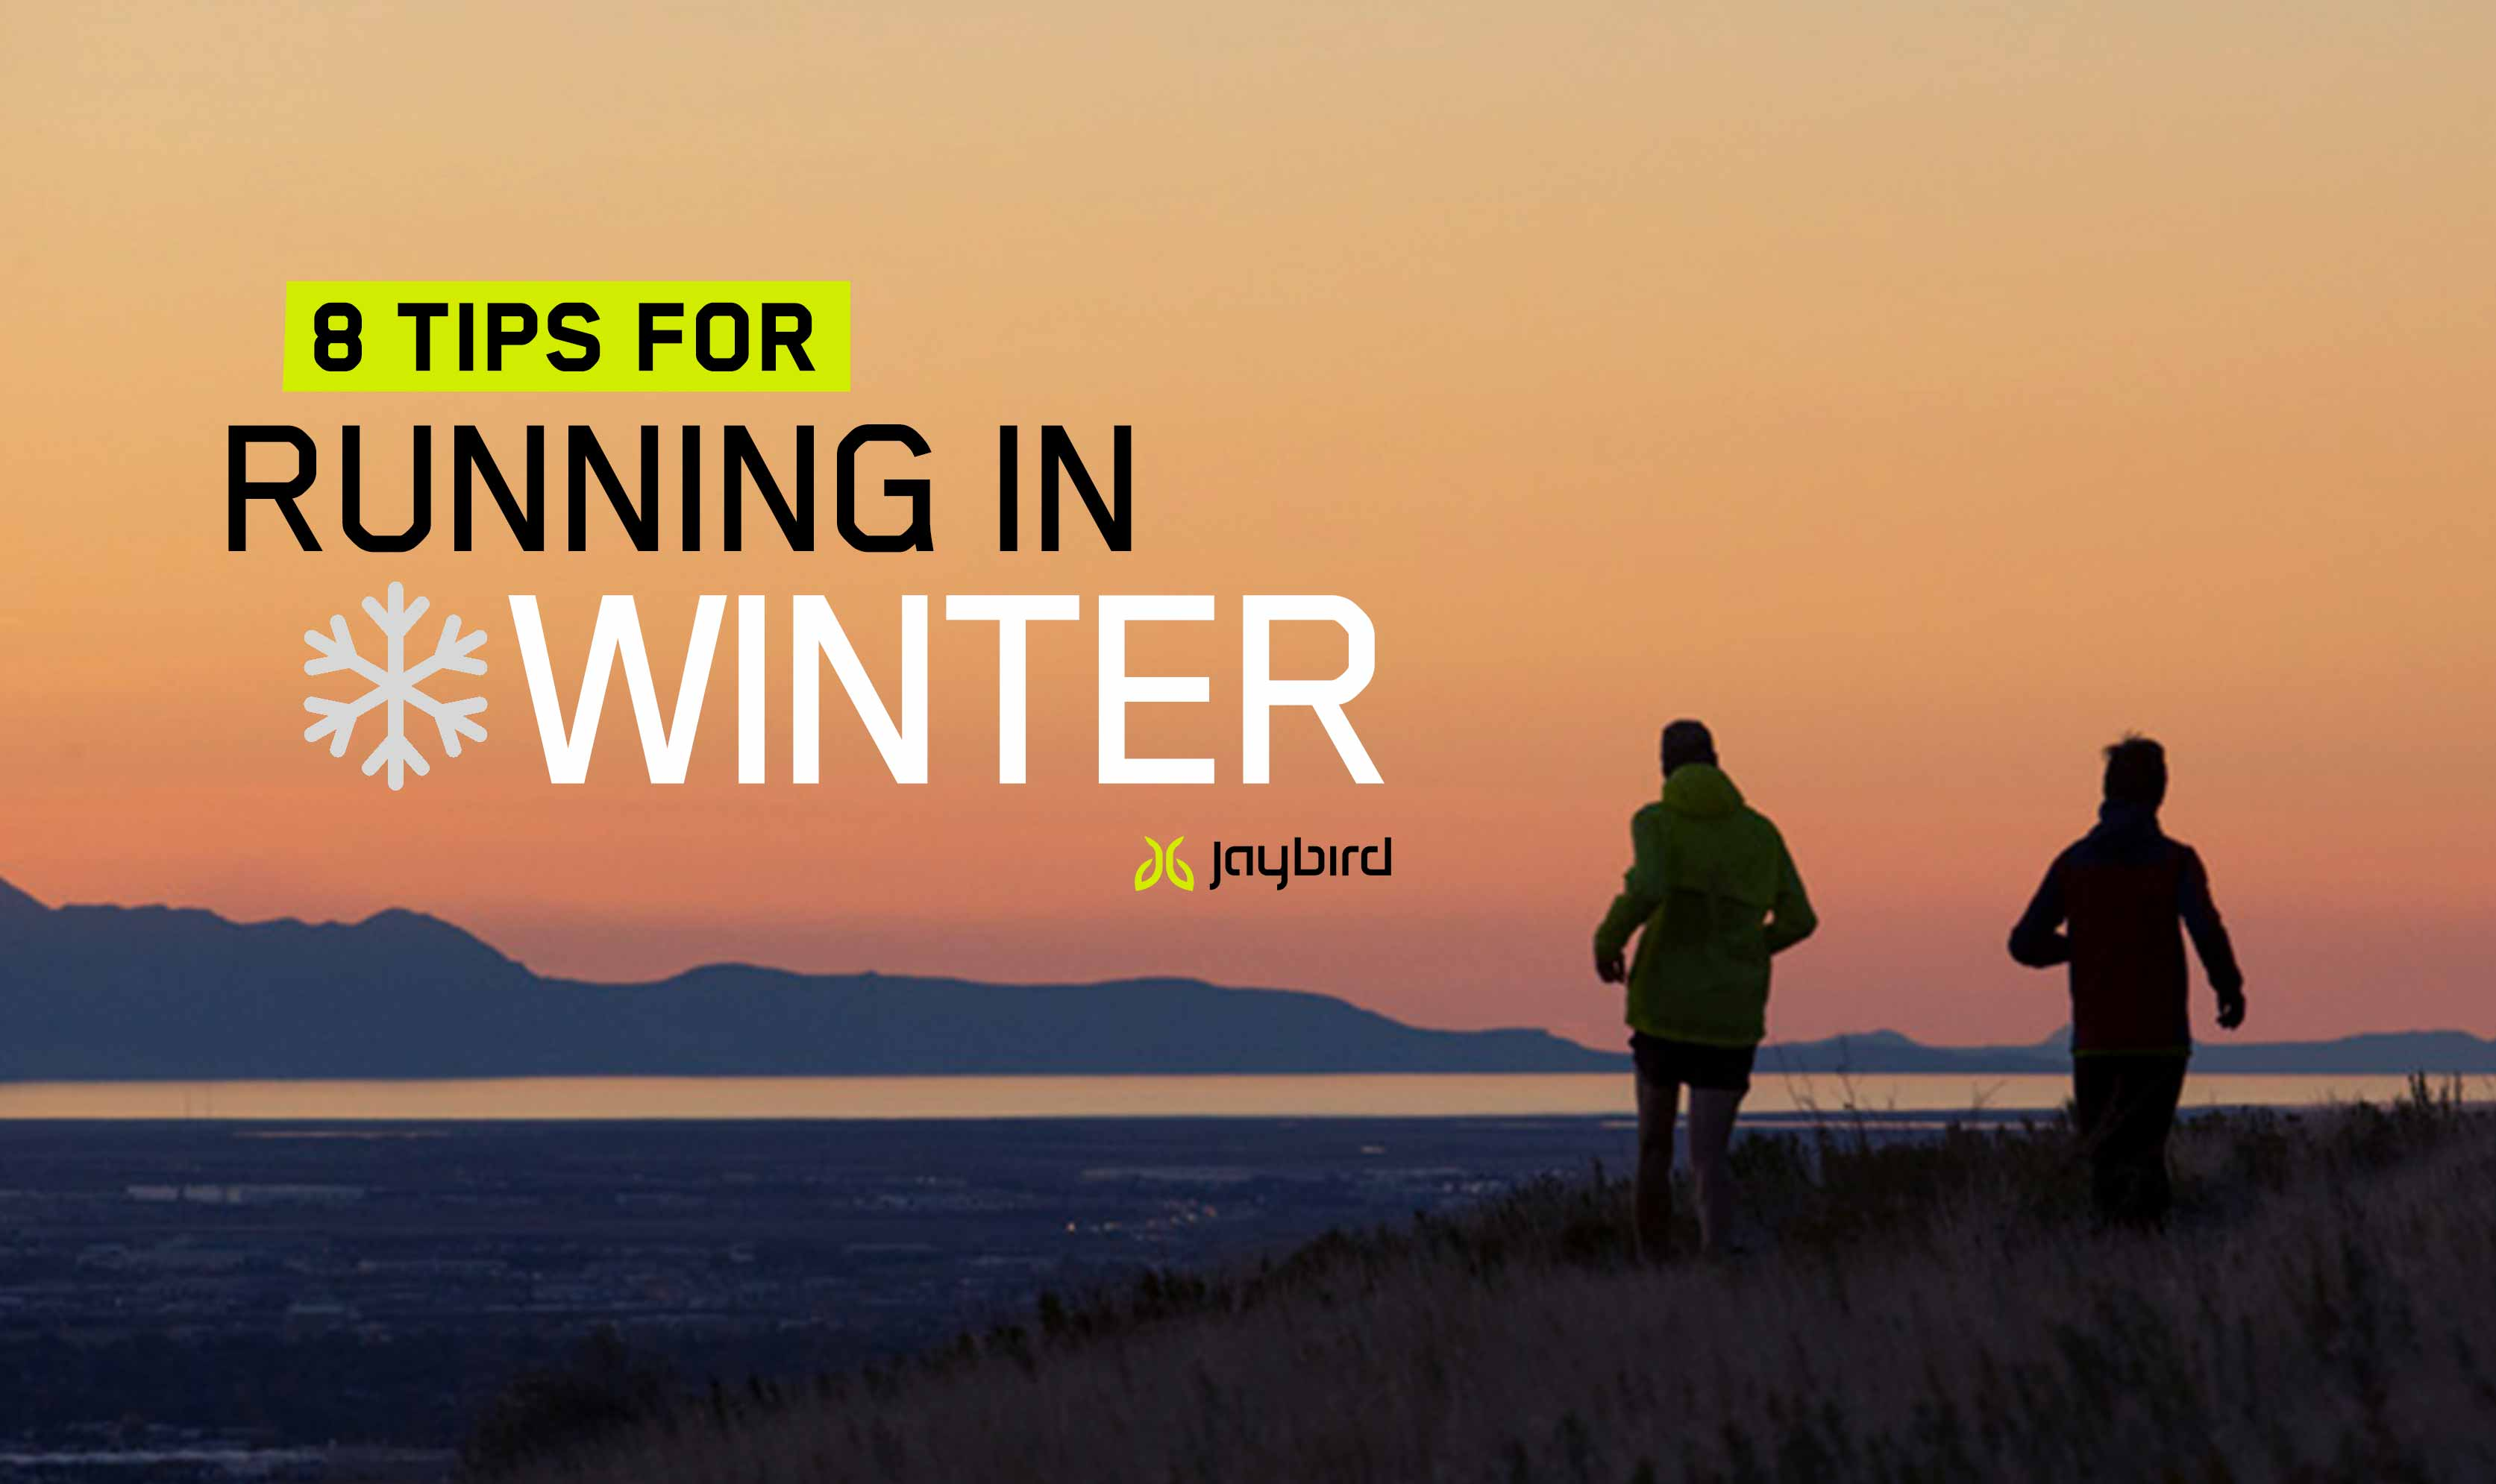 jaybird-sport-blog-8-tips-for-running-in-winter-image-20161220